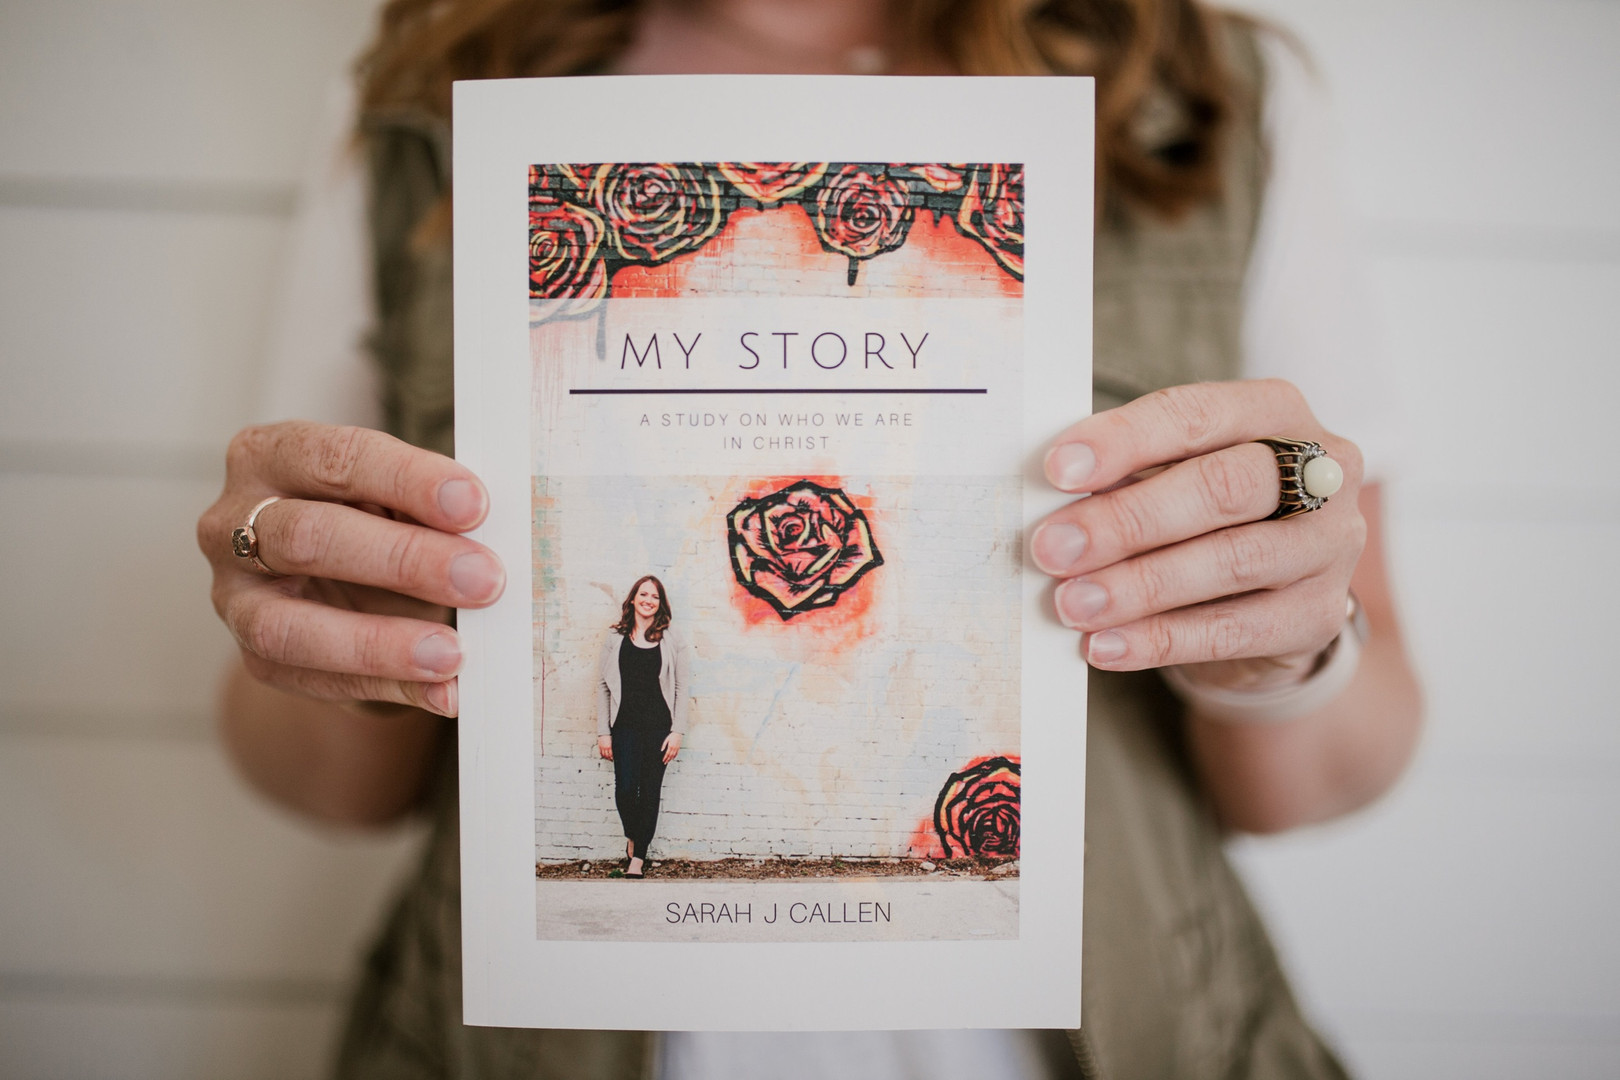 My Story: A Study on Who We Are in Christ